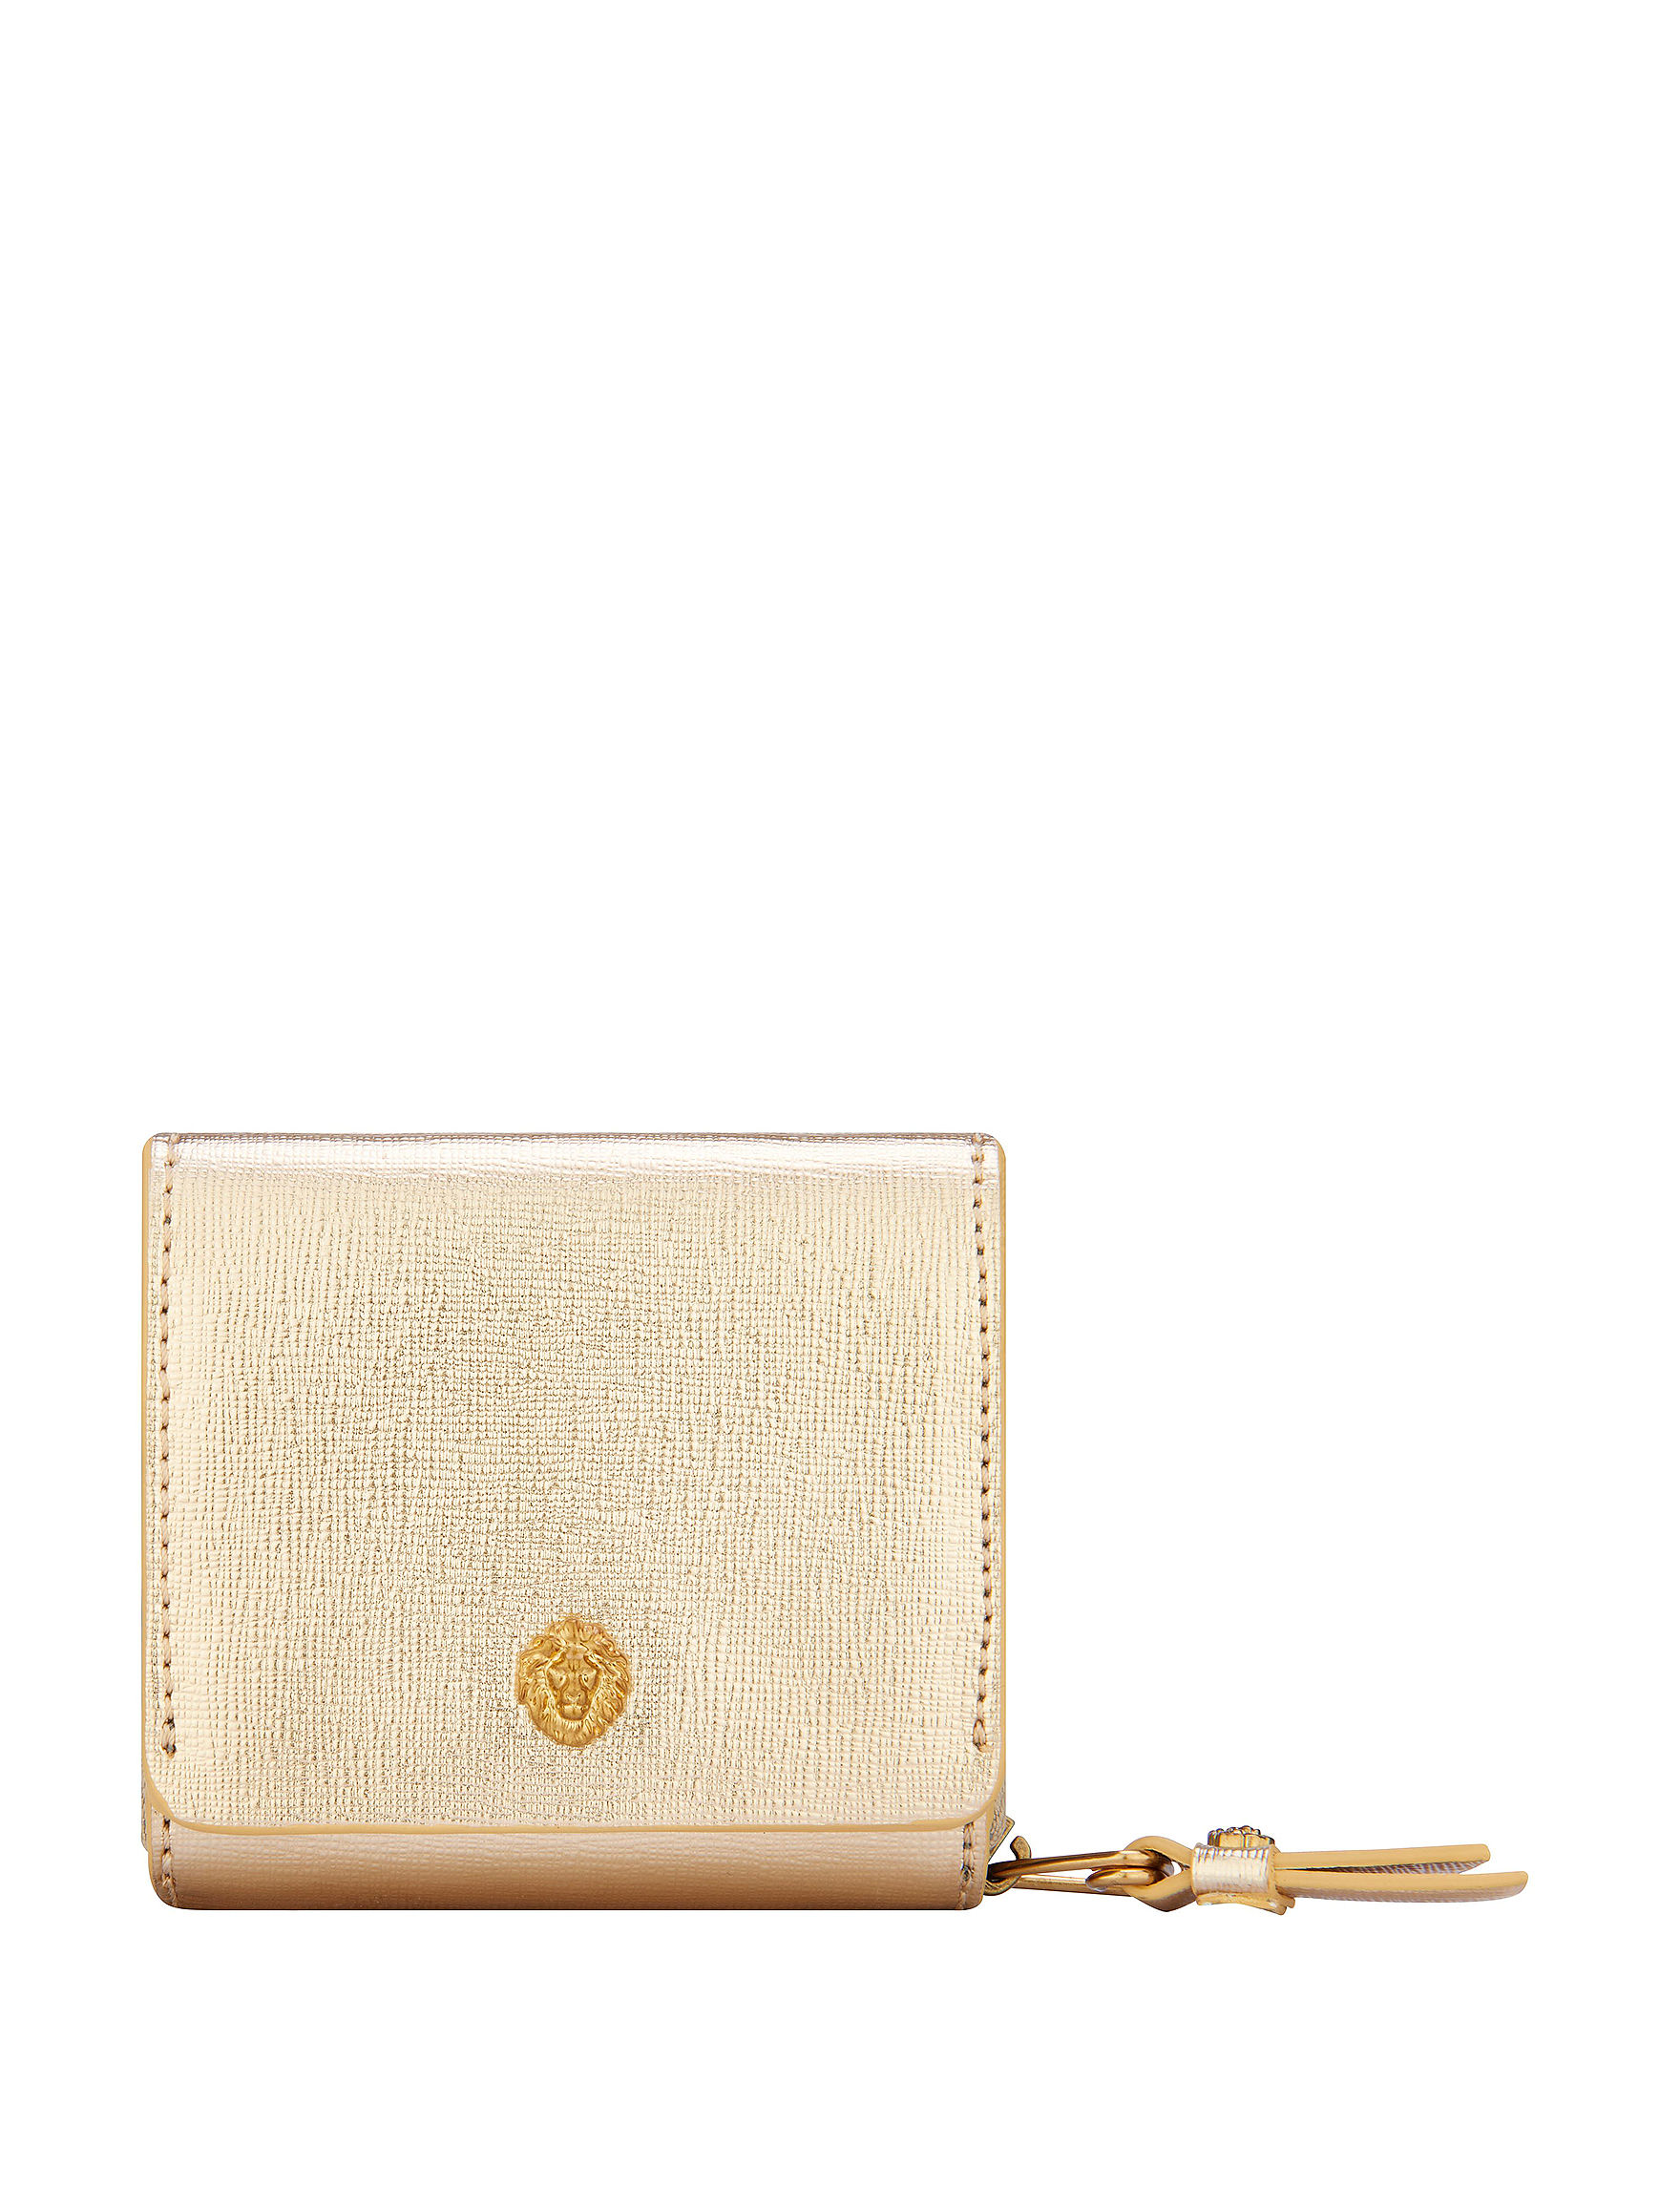 Anne Klein Yellow